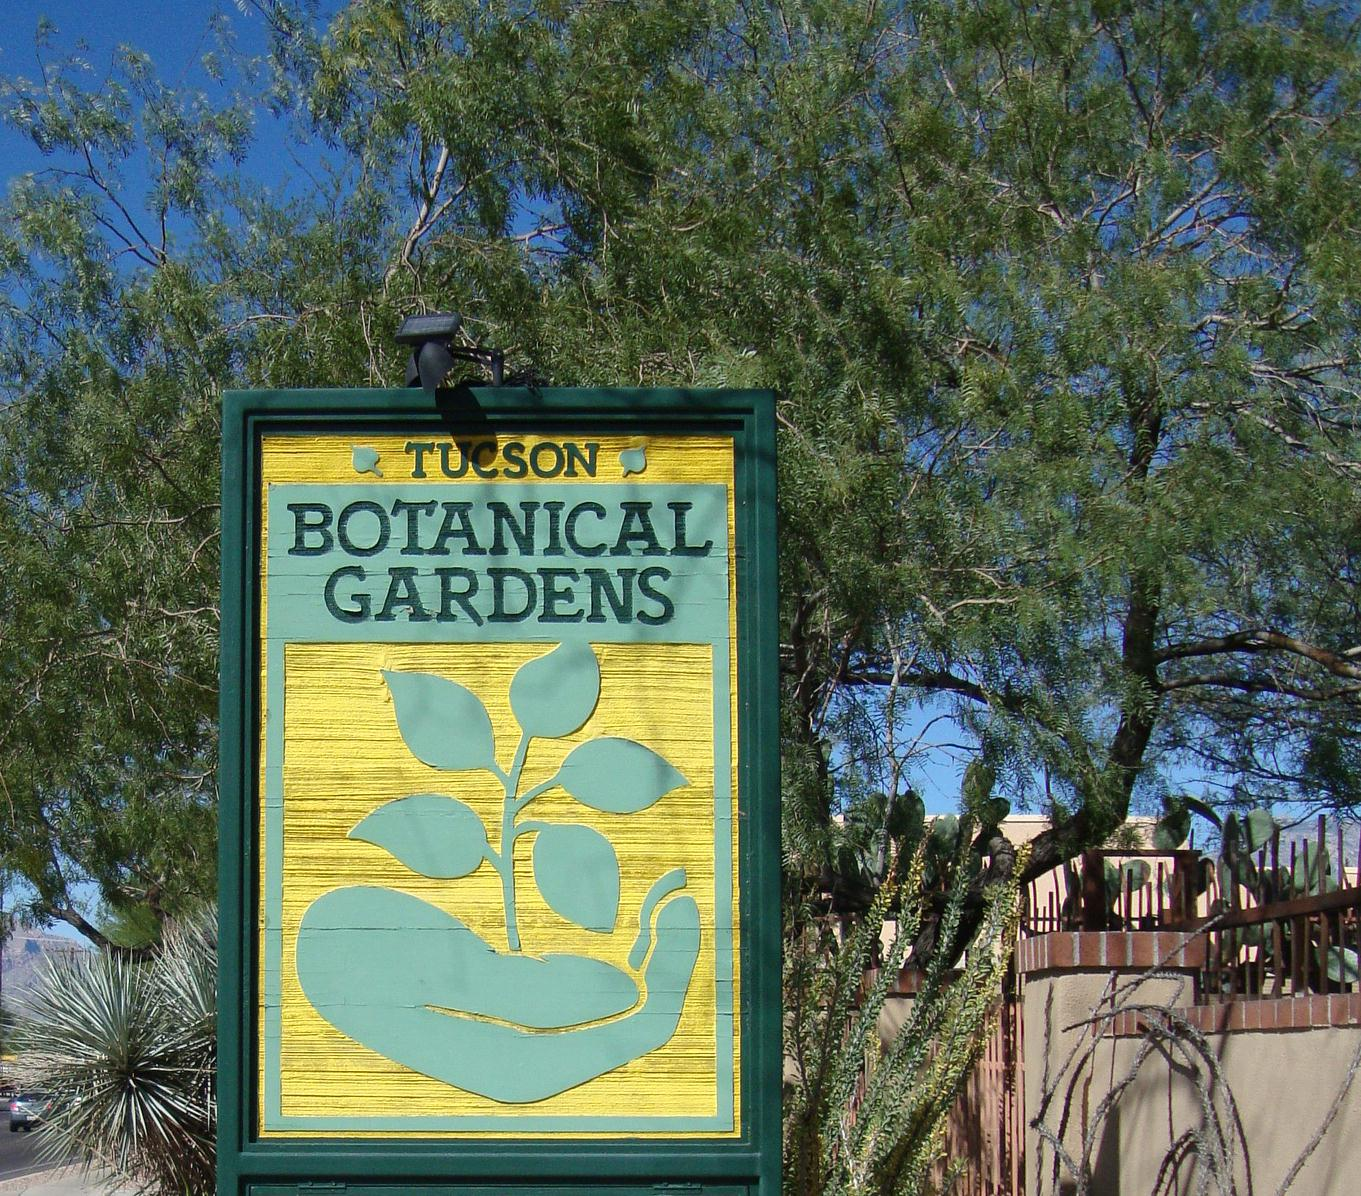 The Tucson Botanical Gardens